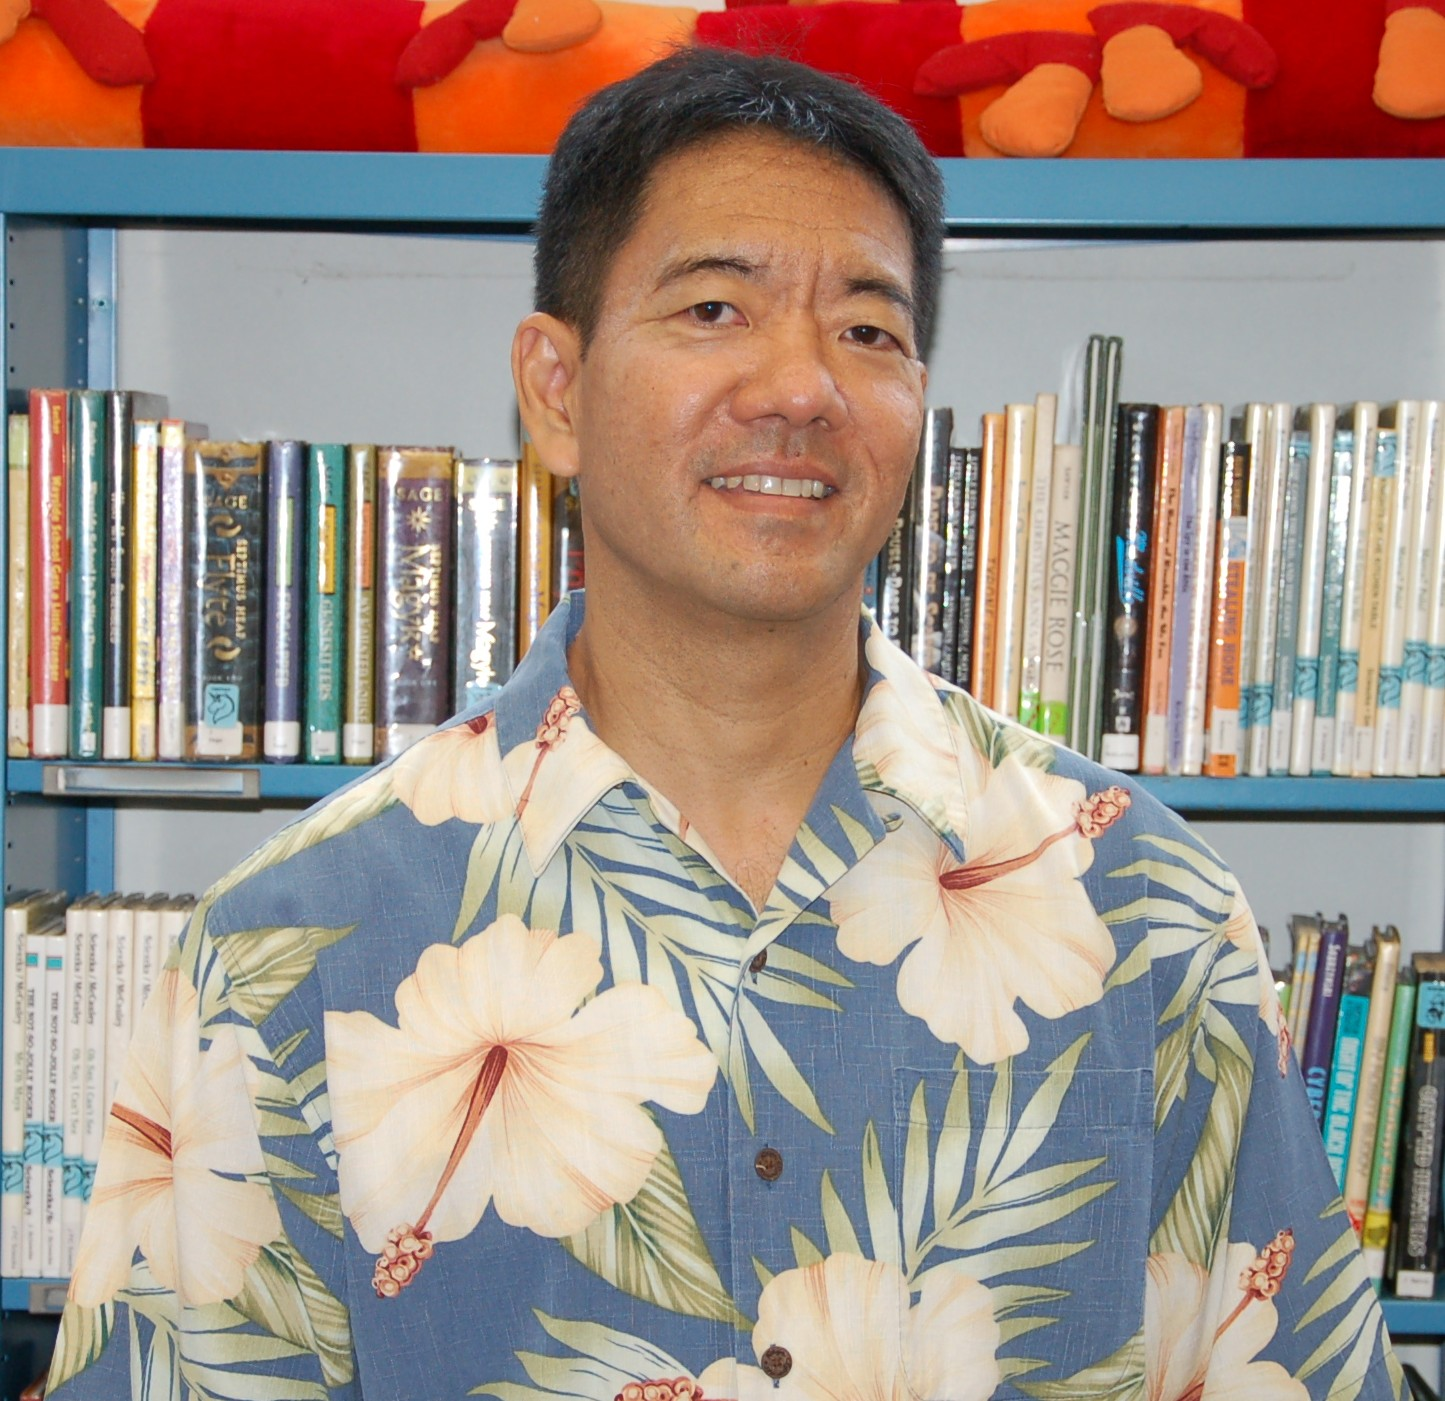 Curt Fukumoto is 2010 HSPLS Employee of the Year. Photo by Paul H. Mark.